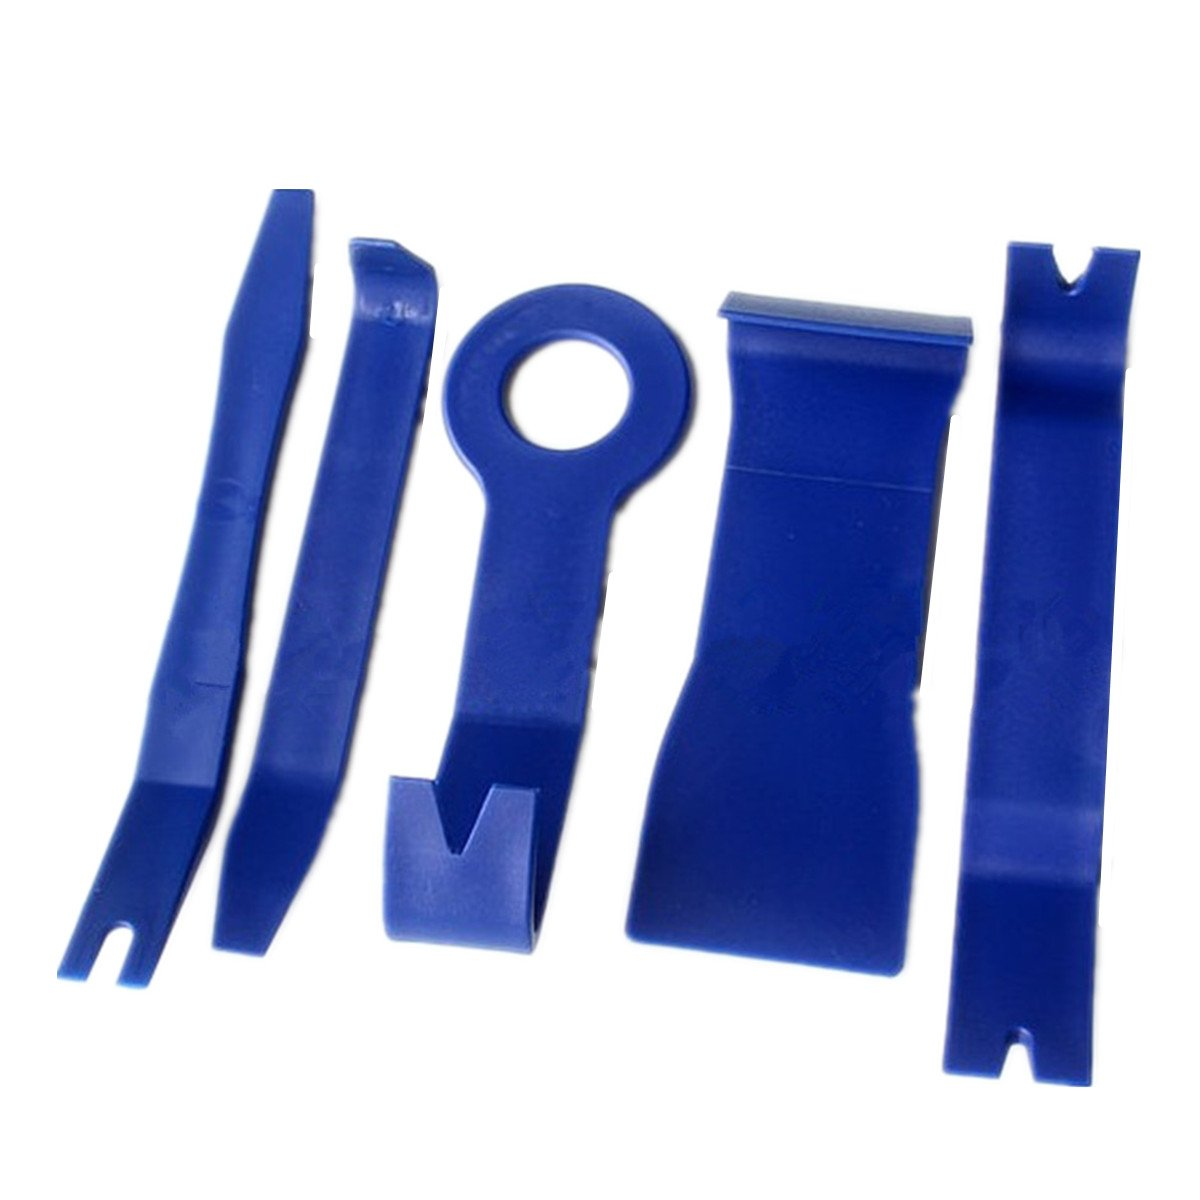 BININBOX Auto Door Clip Panel Trim Removal Tool Set Kits For Car Interior Dash Radio Audio Installer Pry Tool Portable Blue (2 Sets)